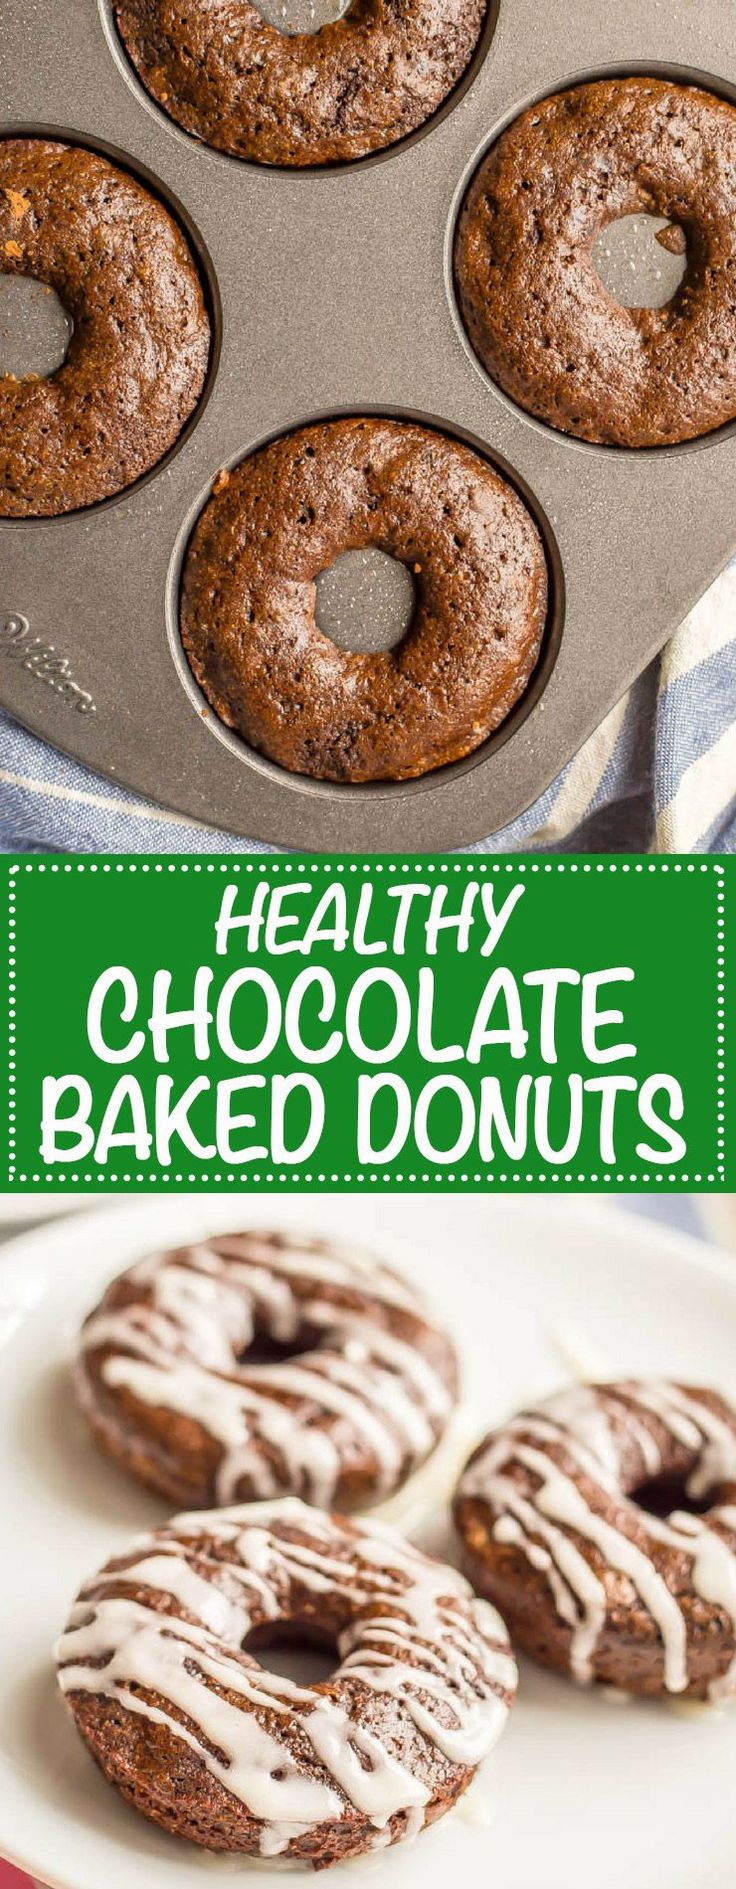 Whole wheat chocolate baked donuts have double the chocolate and none of the guilt! They come together quickly and make for a super fun healthy breakfast! Serve with an easy vanilla glaze, Nutella or a peanut butter frosting. #chocolatebreakfast #bakeddonuts #healthydonuts | www.familyfoodonthetable #HealthyChocolateRecipe